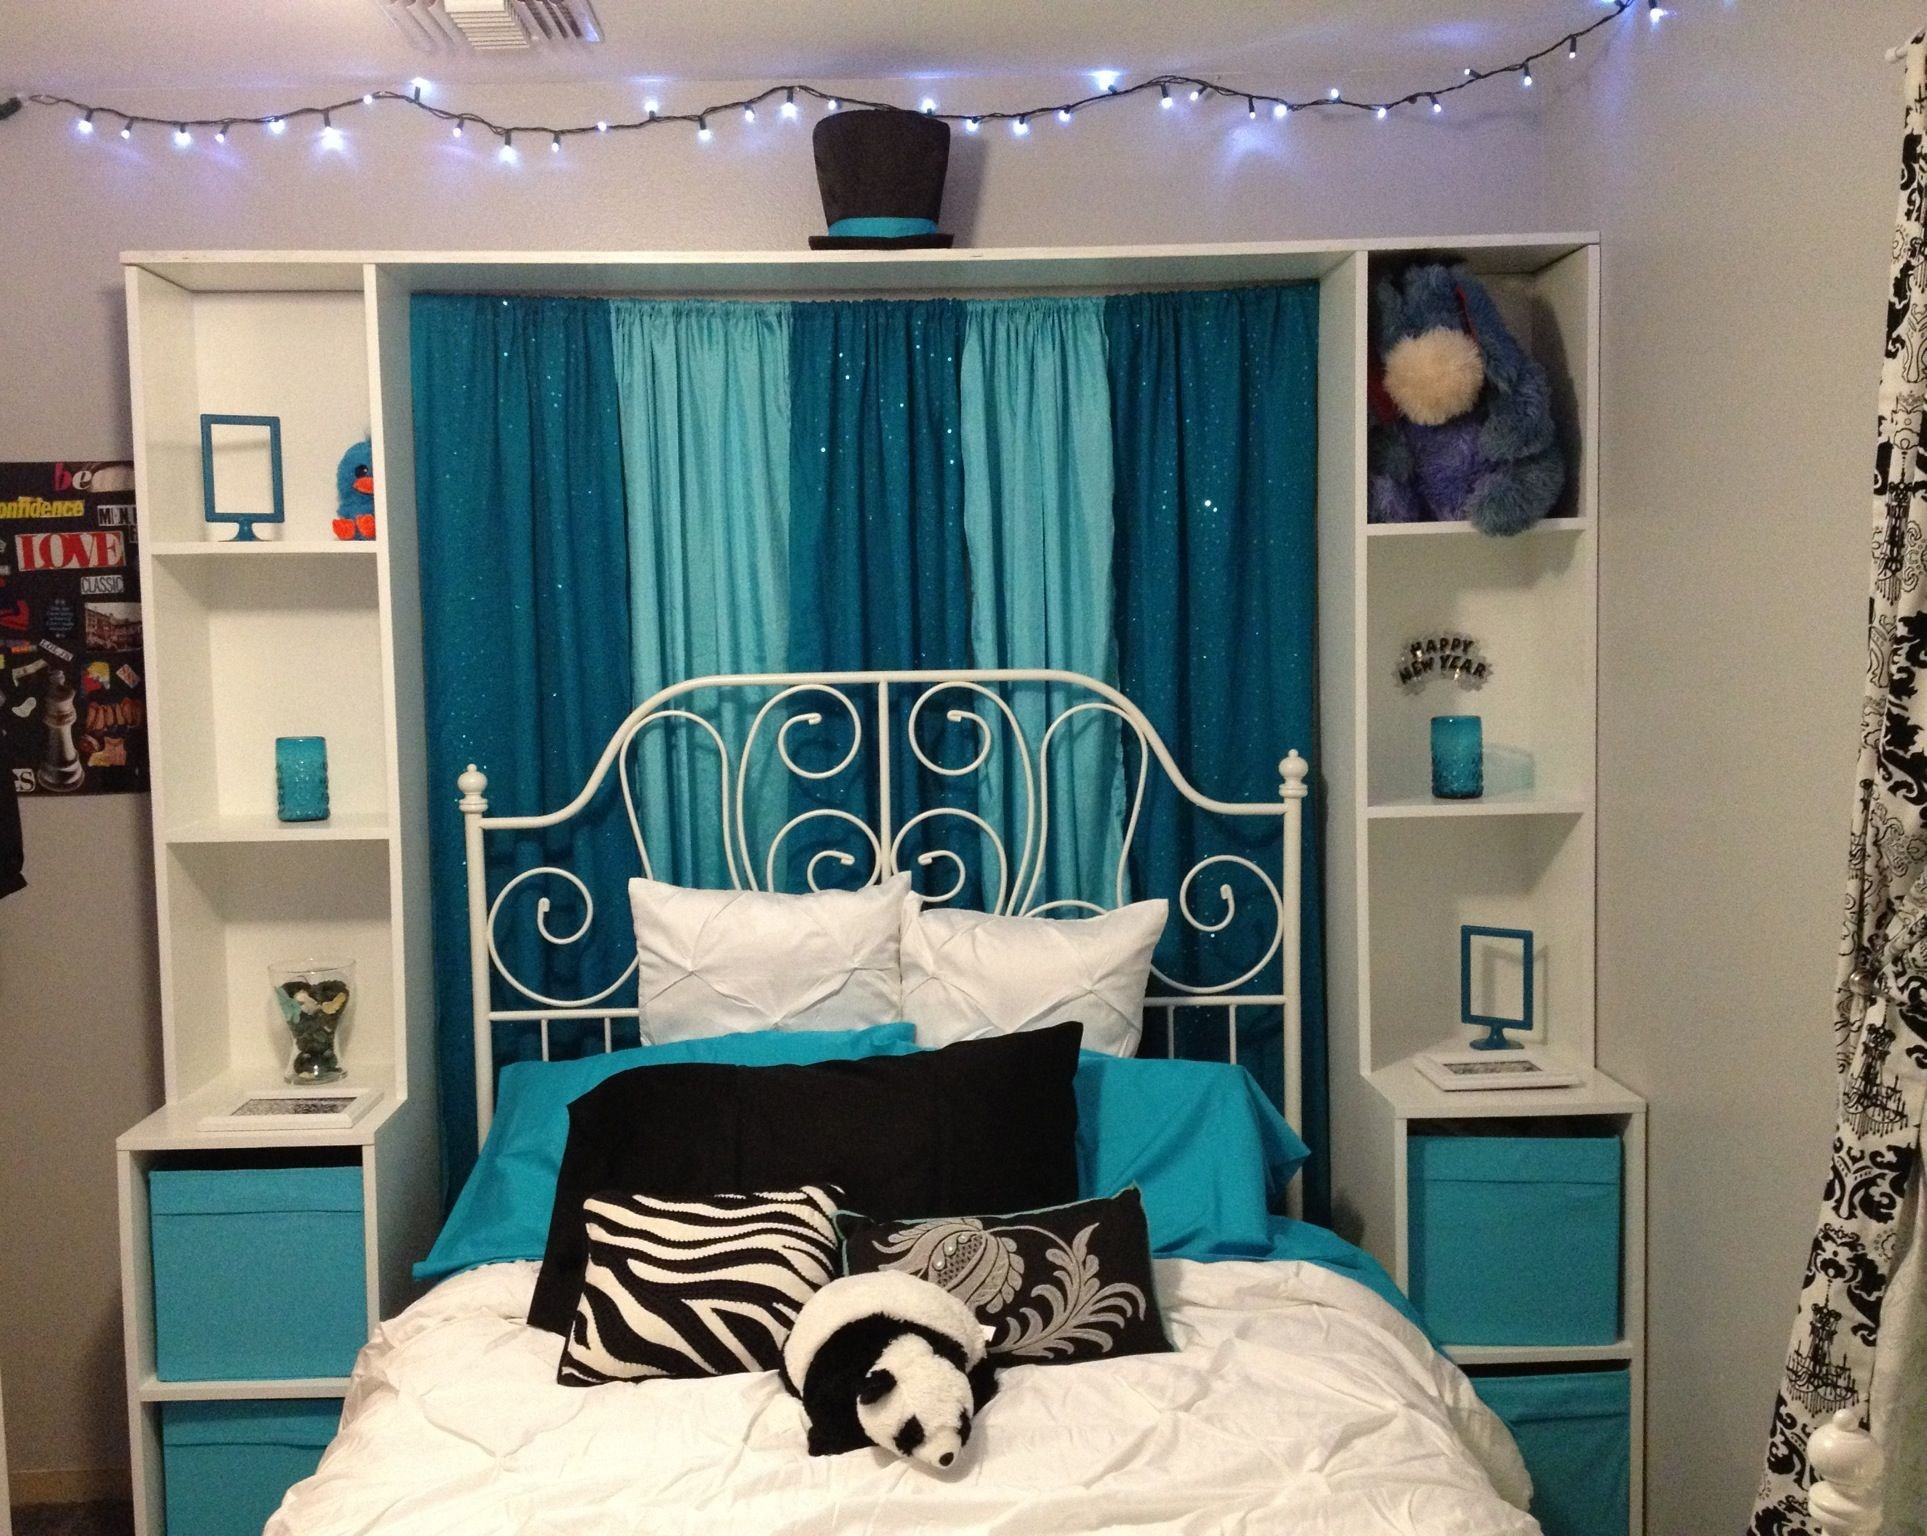 Best Teal And Aqua Black And White Bedroom Redo For My 14 Year Old So Pretty Bedrooms Teal With Pictures